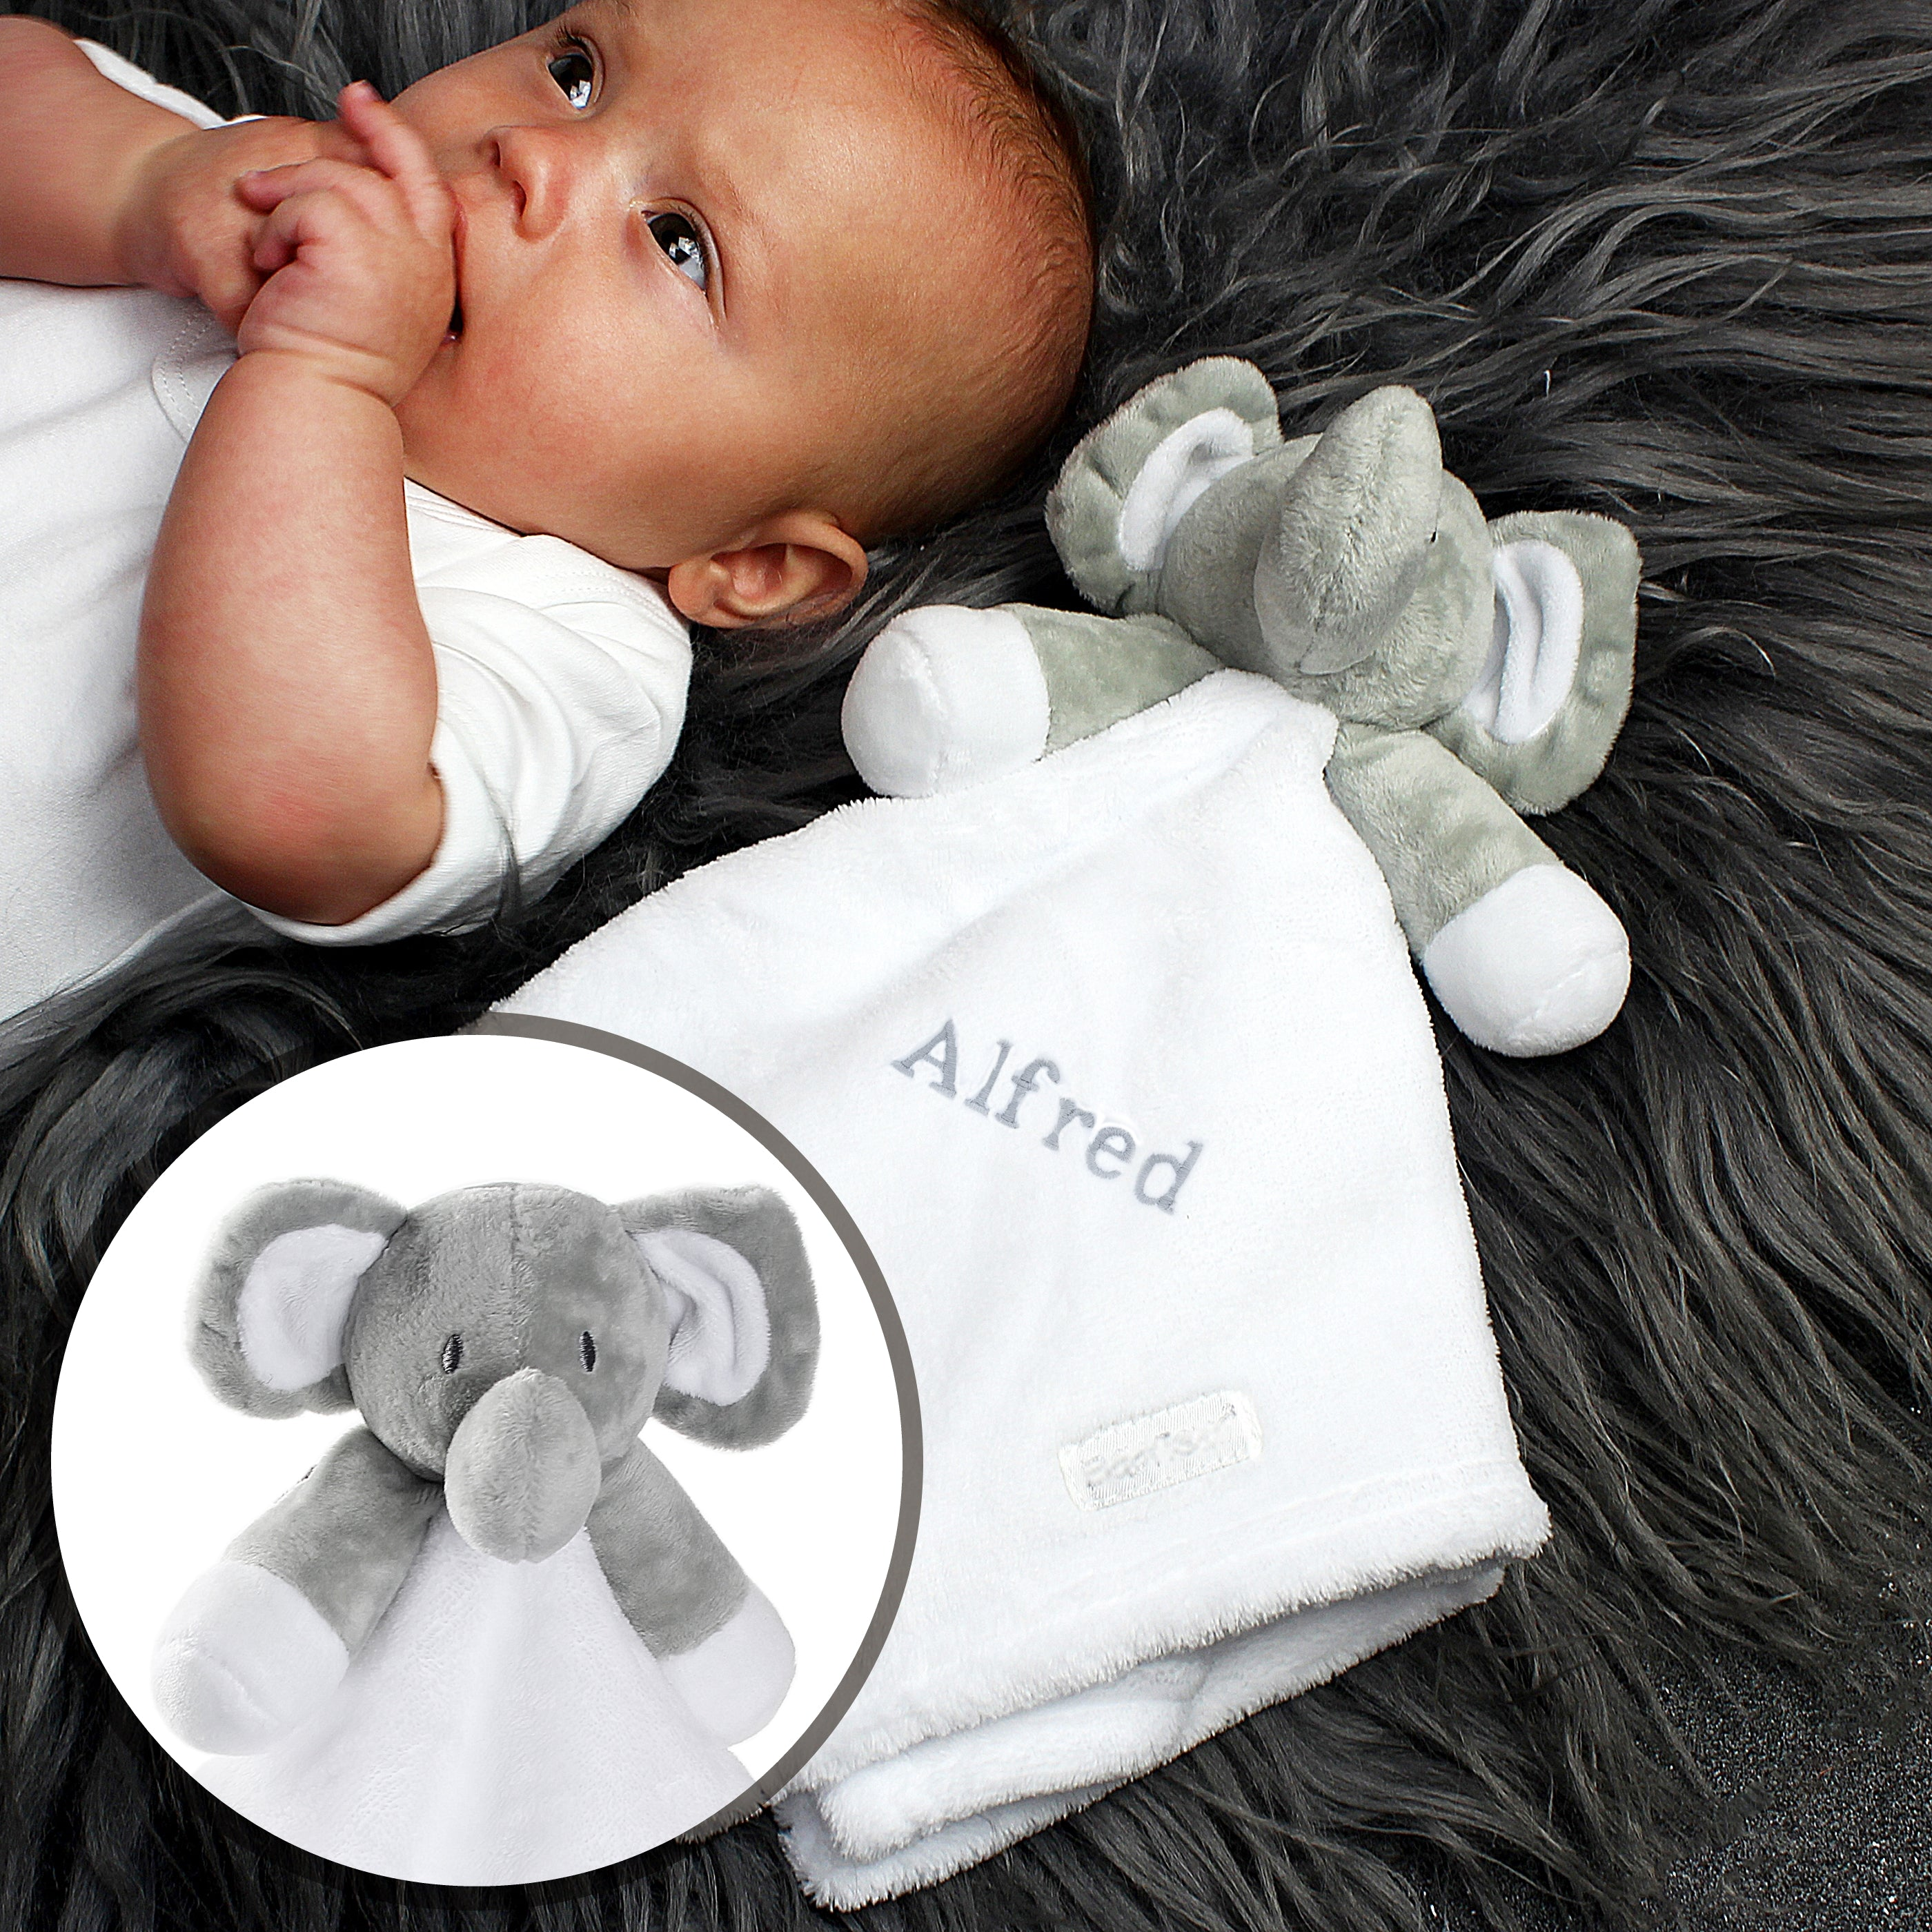 Personalised Plush Grey Elephant and White Comforter for Baby, Gift Giving by Low Cost Gifts